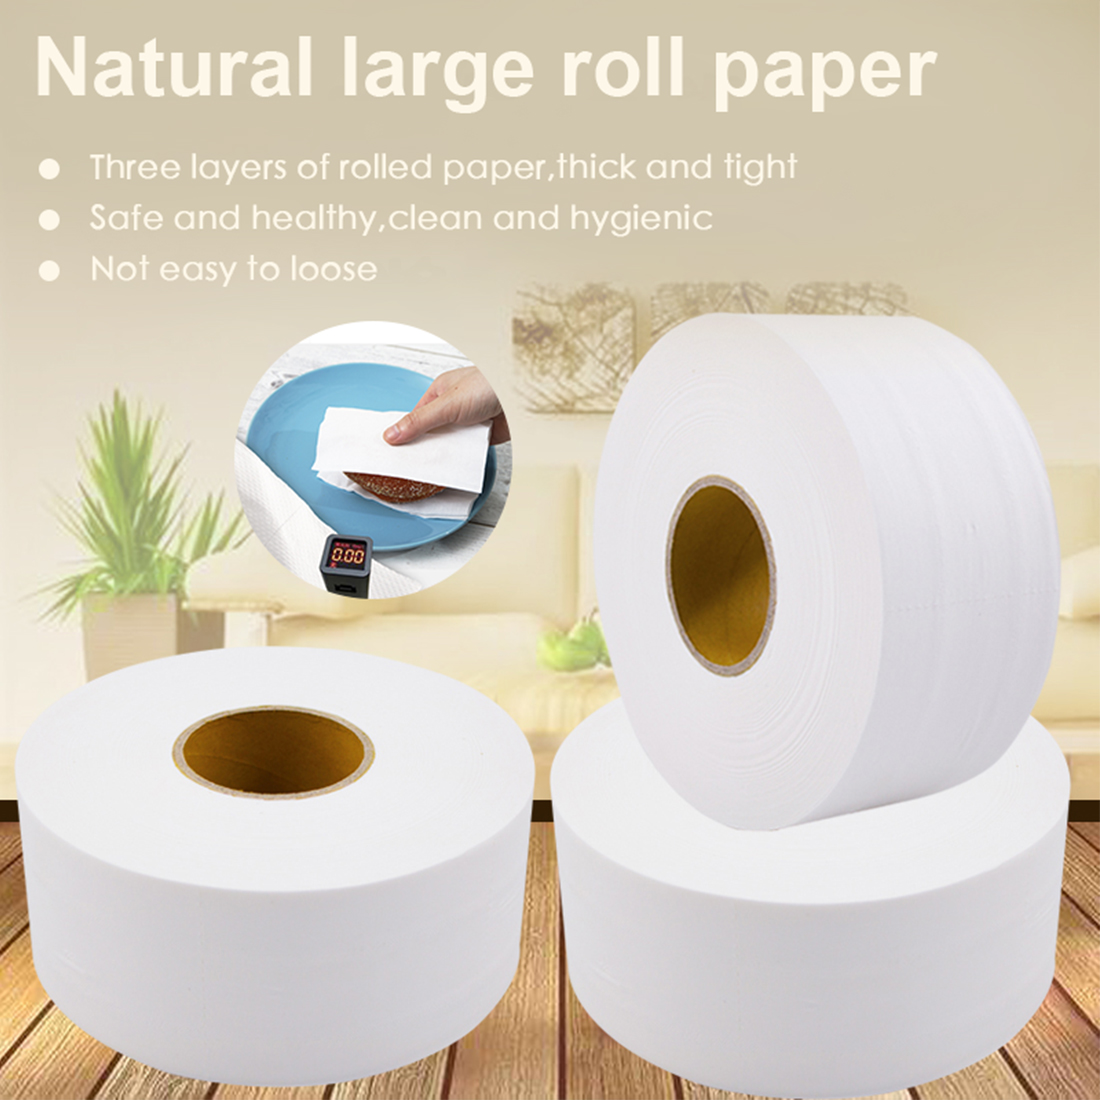 3 Roll Toilet Paper 580g/Roll Bath Tissue Roll Paper 900+sheets Ultra Commercial Jumbo Roll Paper Towels For Home Public Hotel